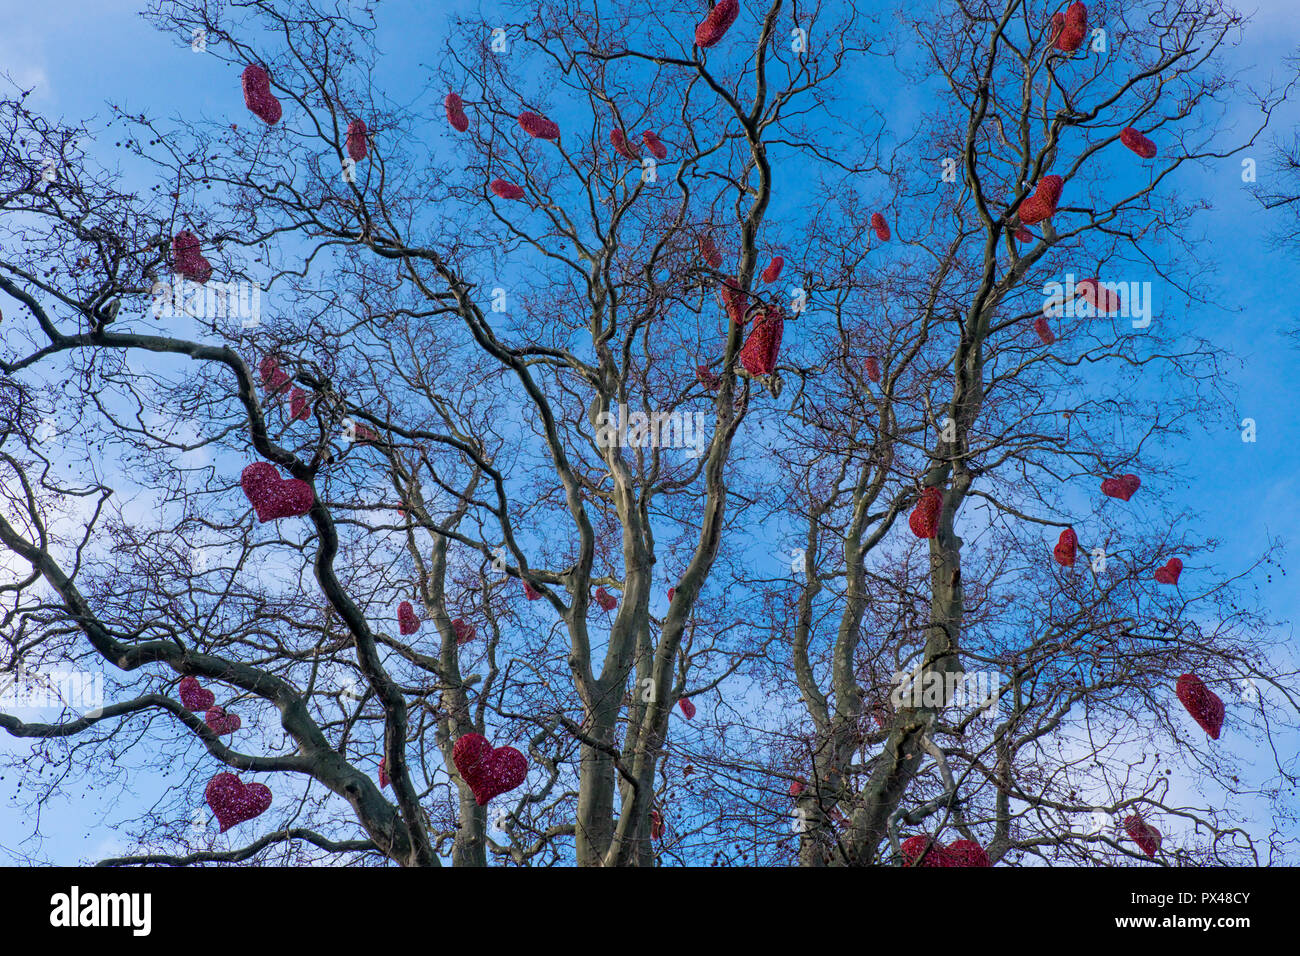 Red love hearts tied in the branches of a tree, Malmo, Sweden - Stock Image